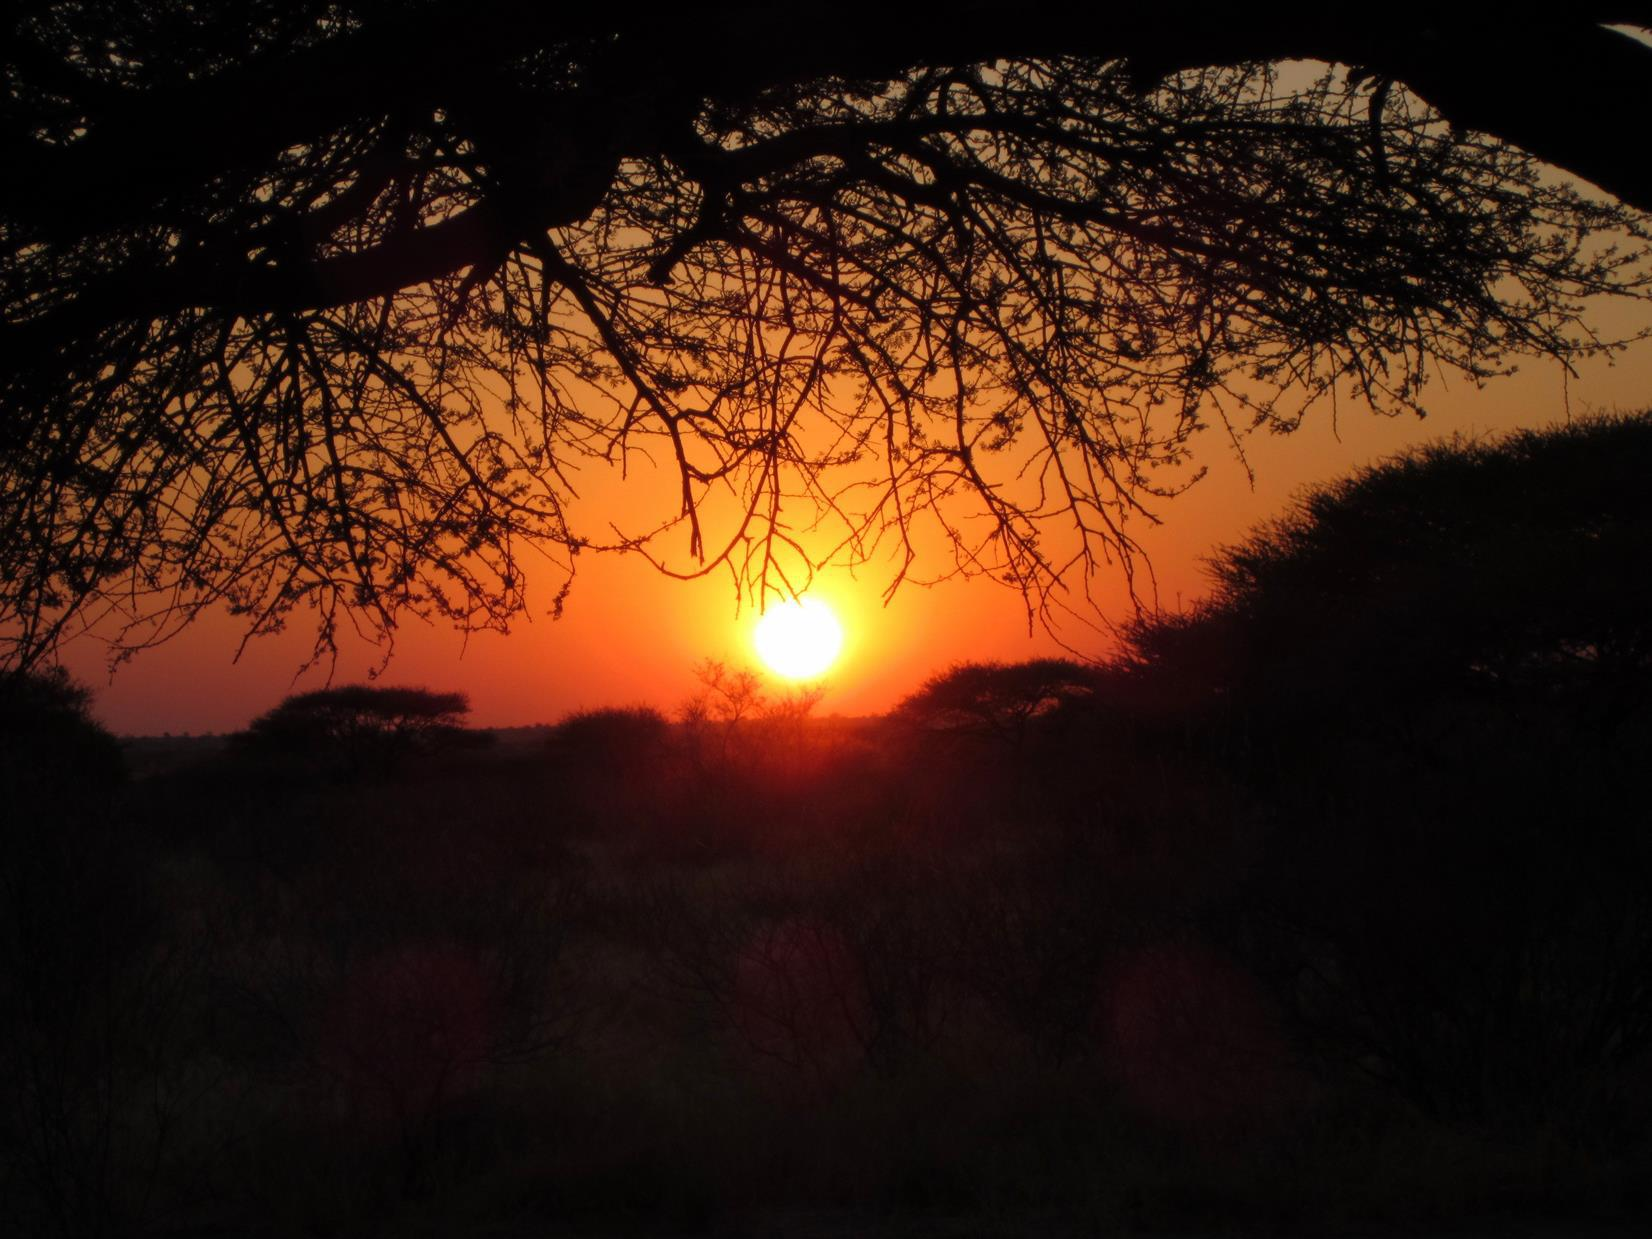 Sunset in the Kalahari.